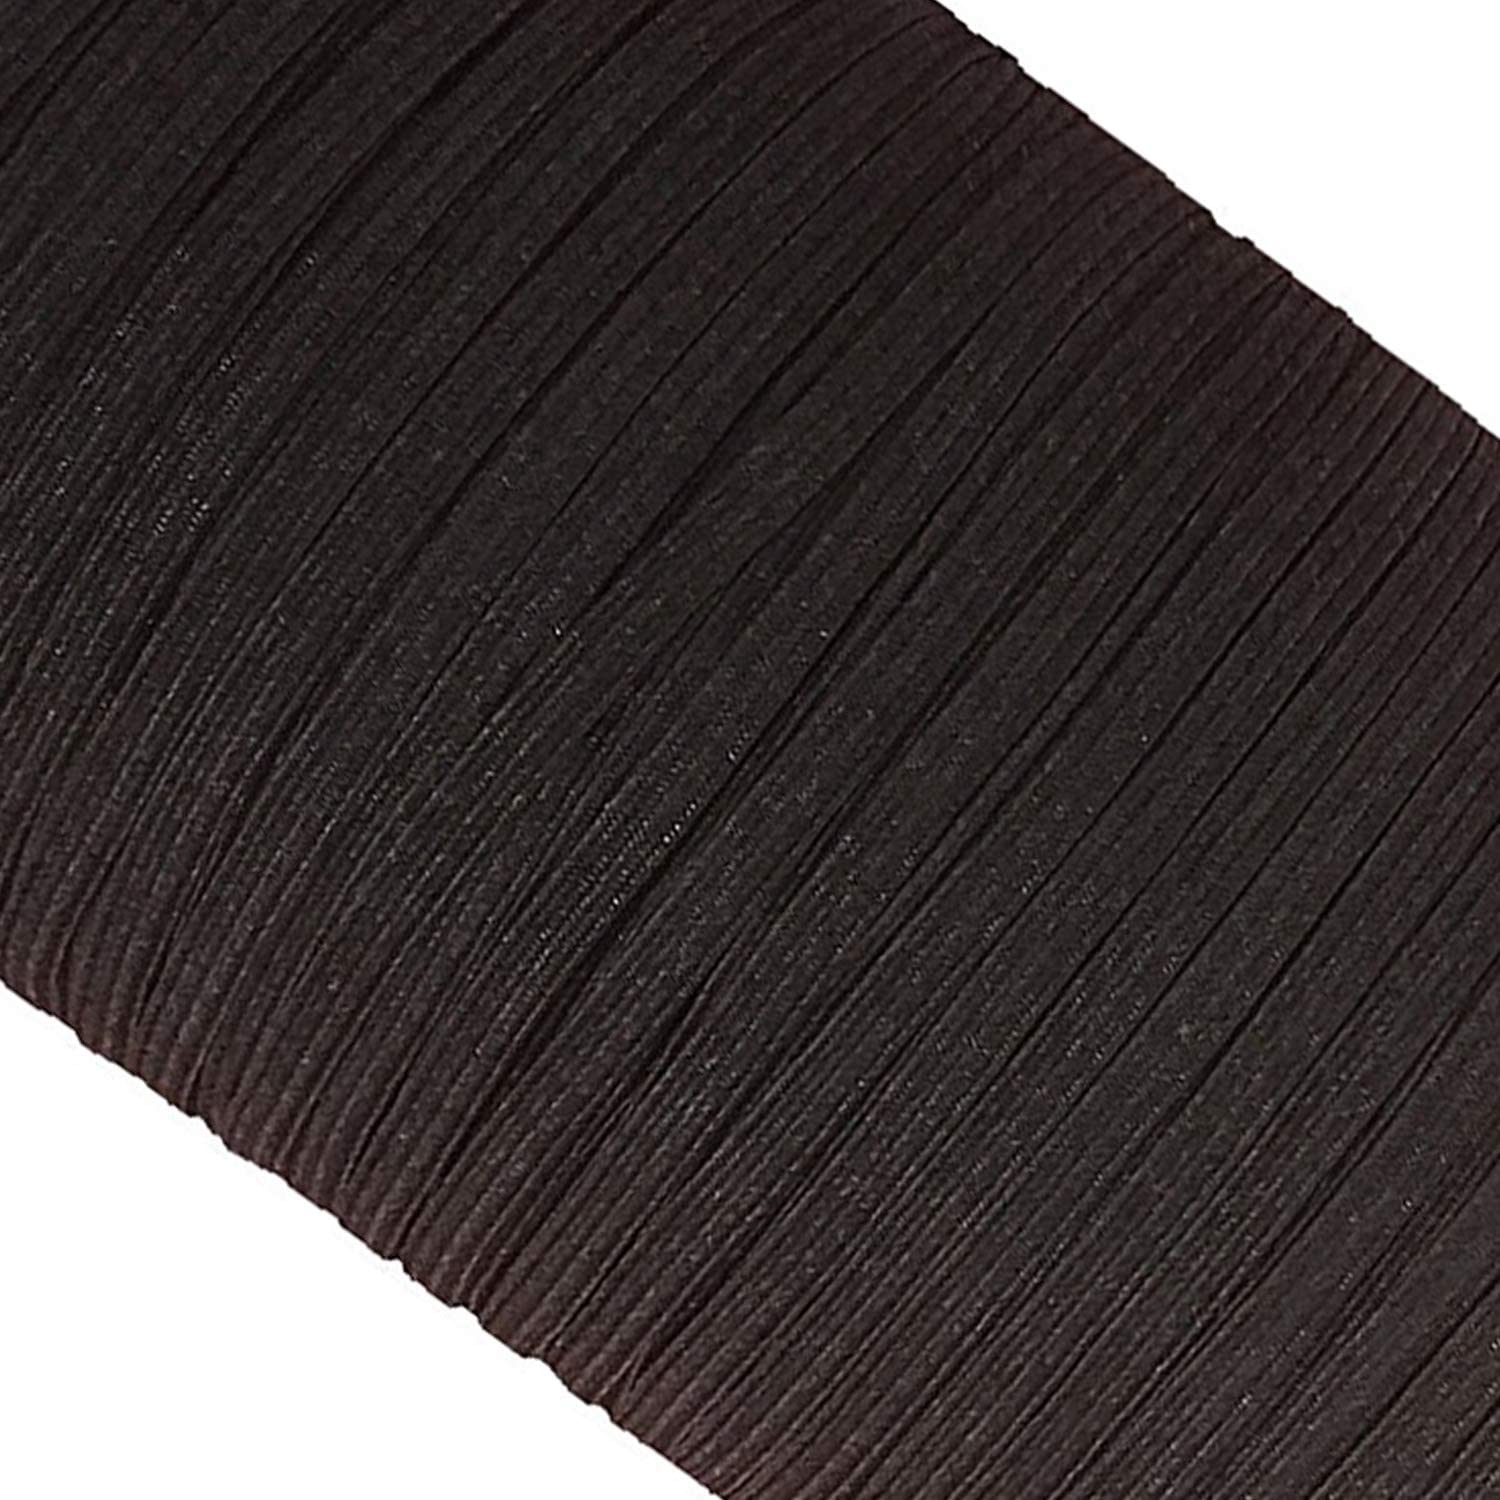 HABERDASHERY 10meters Quality 25mm Wide BROWN  LACES